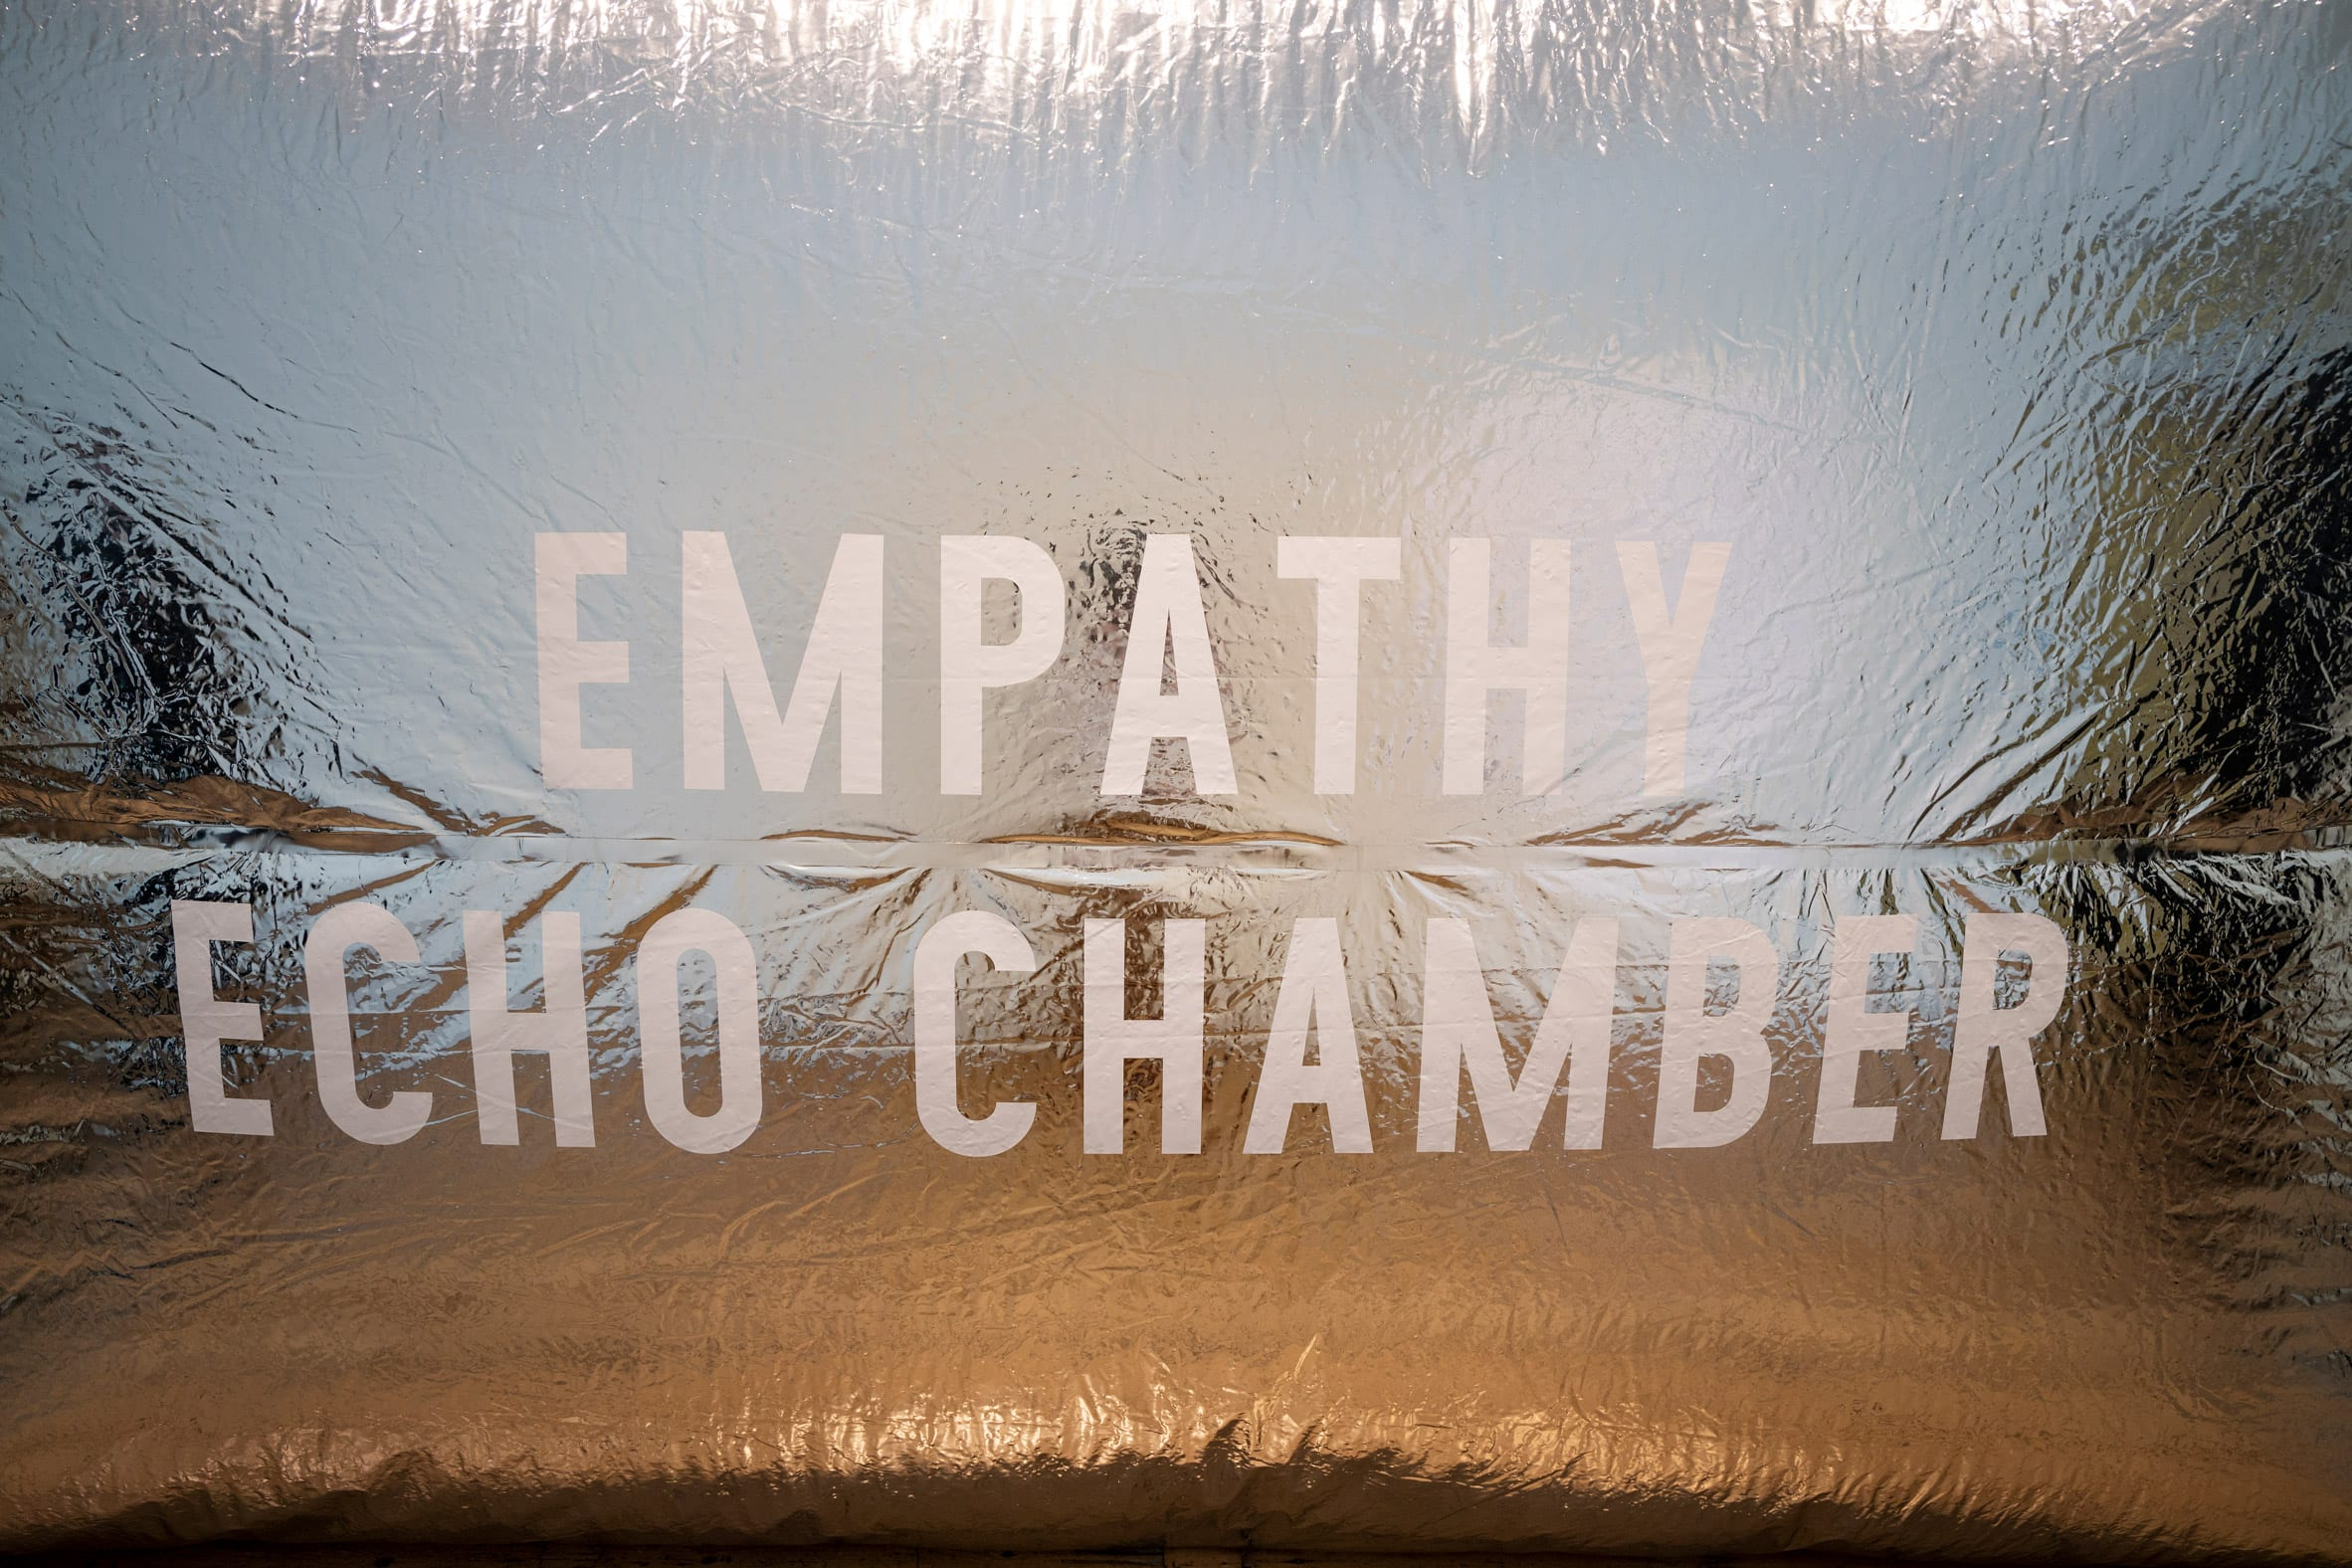 empathy echo chamber is printed on the side of the installation